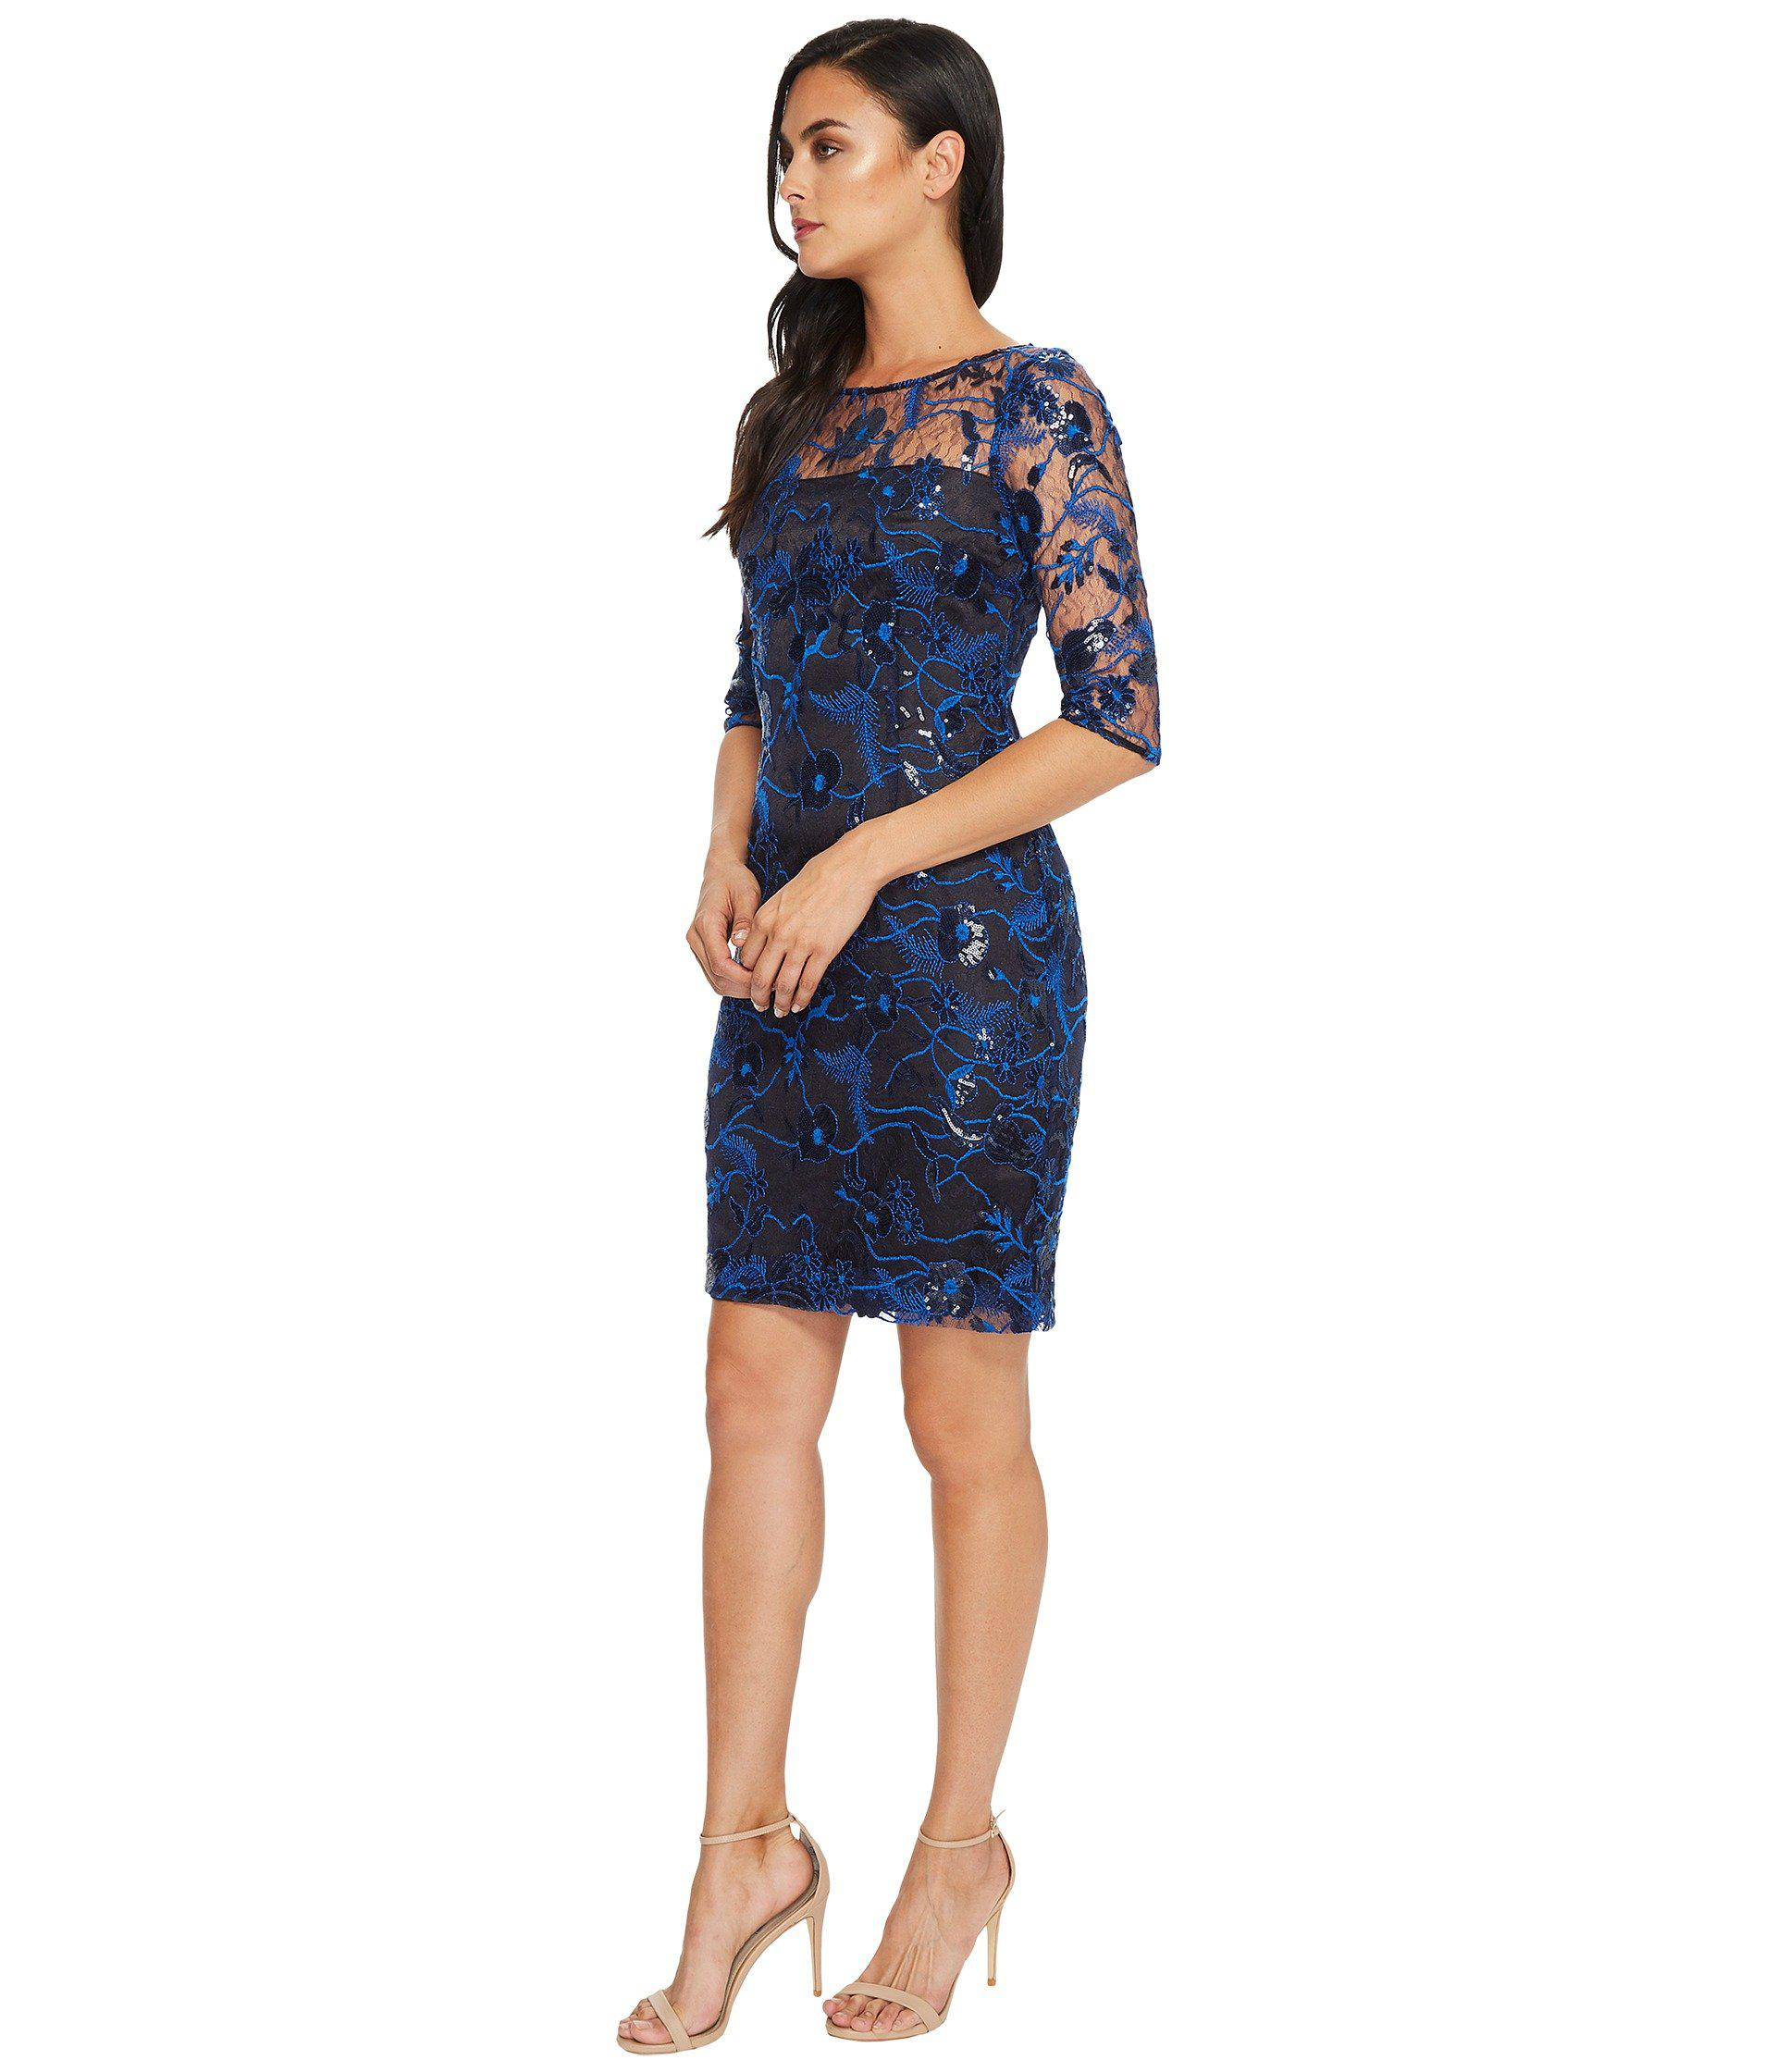 6ee92054 Lyst - Tahari Embroidered Mesh Sheath Dress in Blue - Save 44%